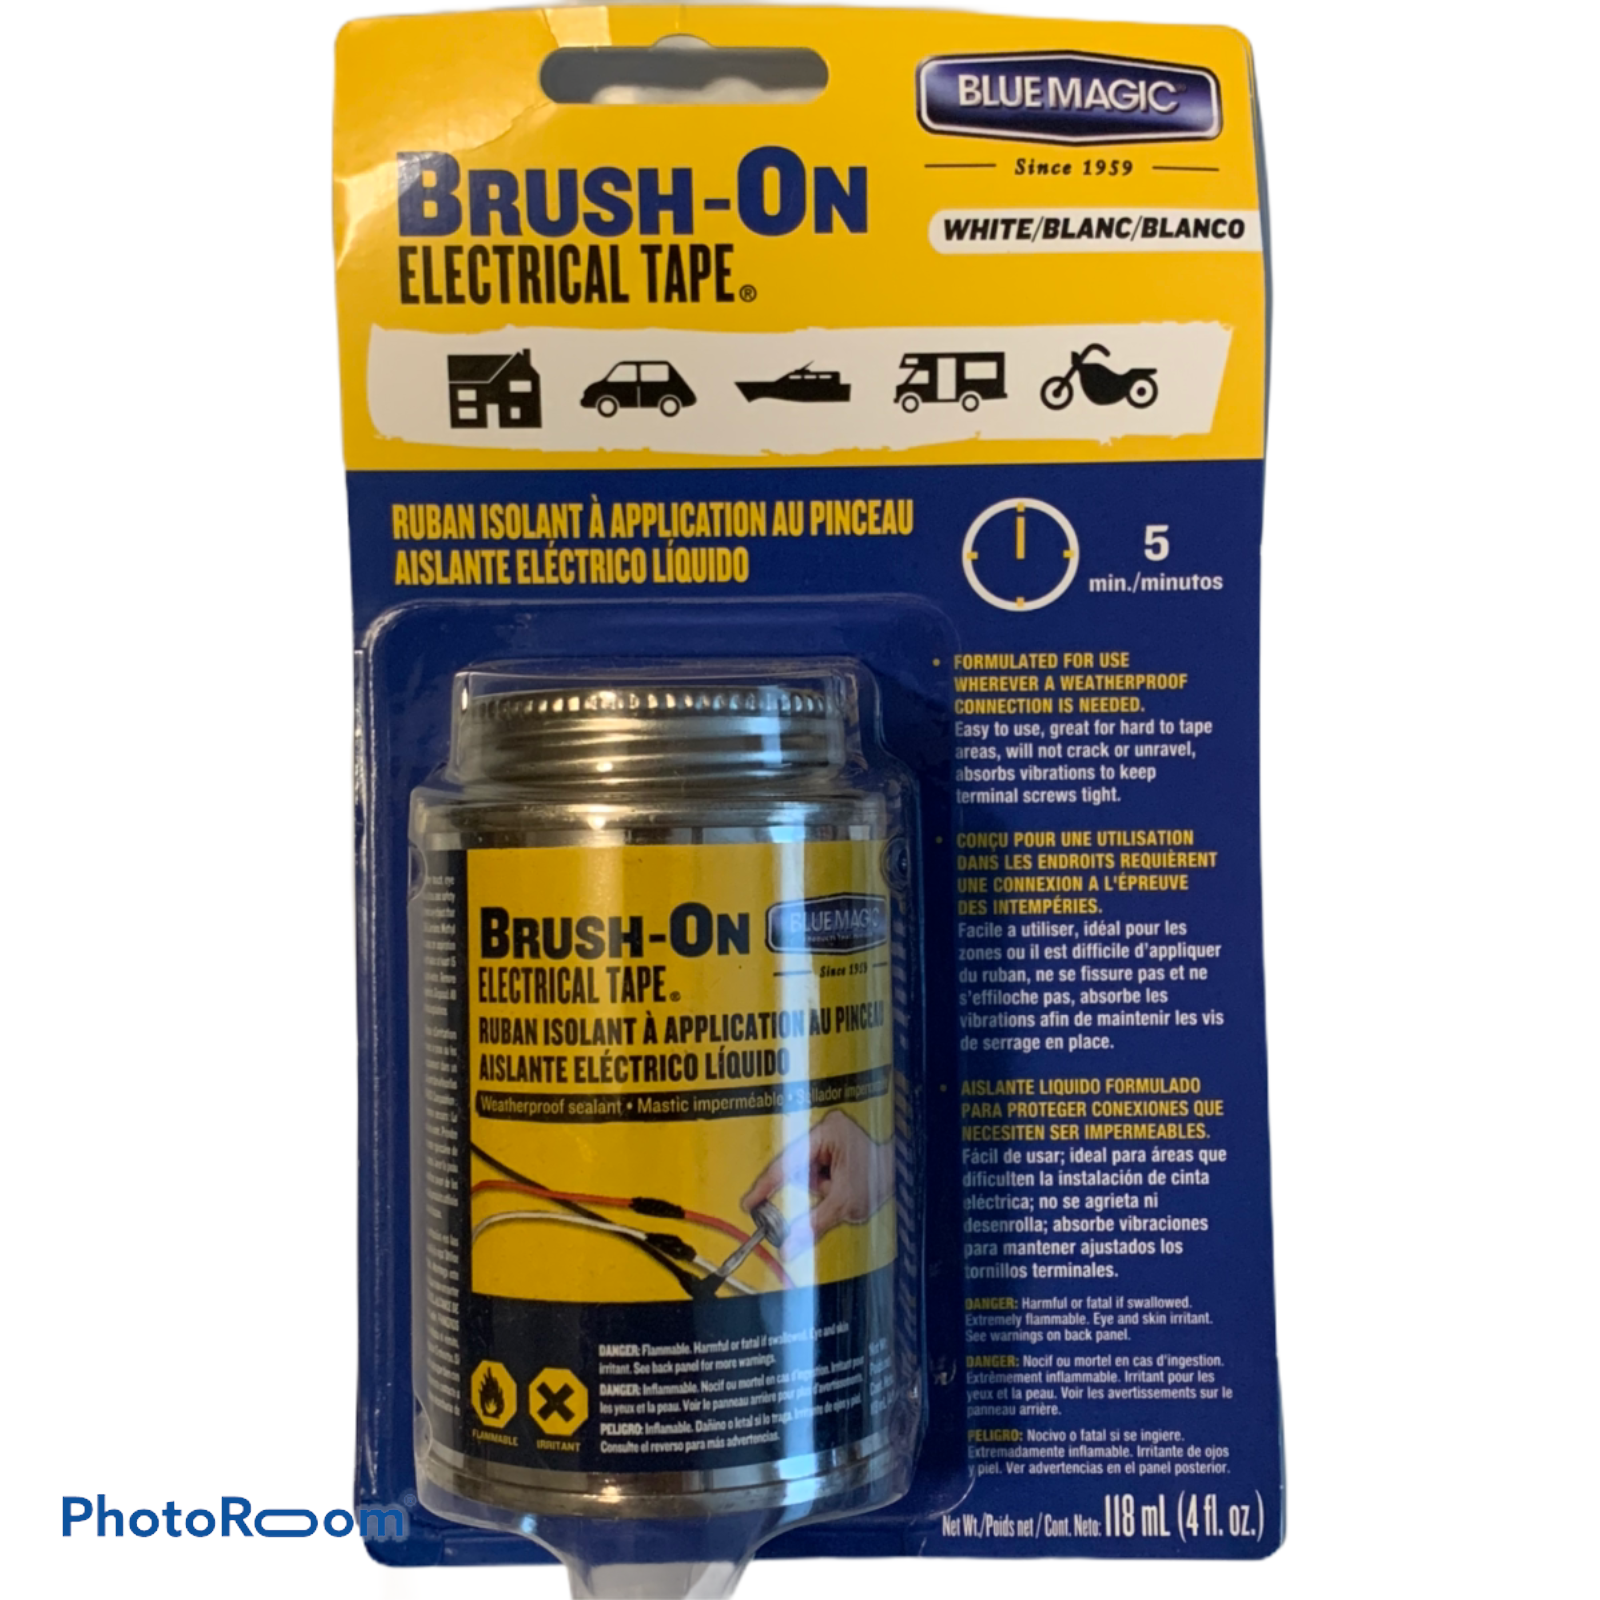 Blue Magic BRUSH-ON ELECTRICAL TAPE Flexible Rubber Waterproof 4 oz (WHITE) Adhesive Tapes